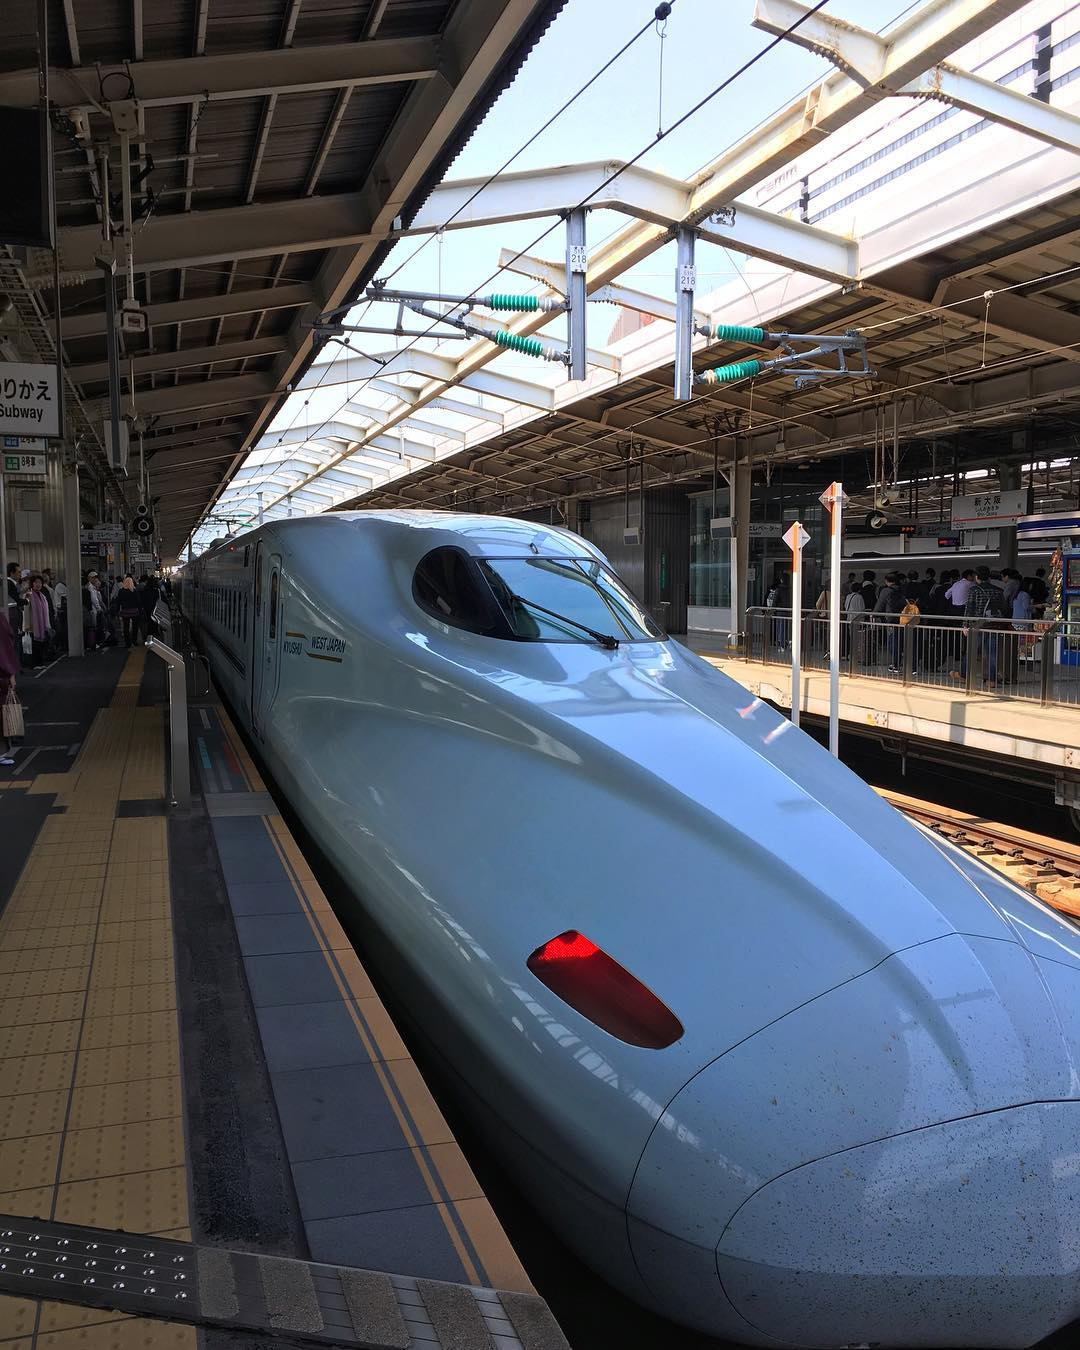 Shinkansen. One of the things that I miss in Japan. It sure is fun chasing the bullet train by the right name, platform, departure time and the right cabin car.  This here is the Hikari Shinkansen, my ride from Osaka to Hakata in Kyushu Island. Over 610km+ in less than 3 hours. Capable of going up to 300km/h.  #Osaka #Hakata #Sakura #Shinkansen  #Japan #SushinaimiTrip  P/s: Back to KL. More Japan throwback pics are coming.